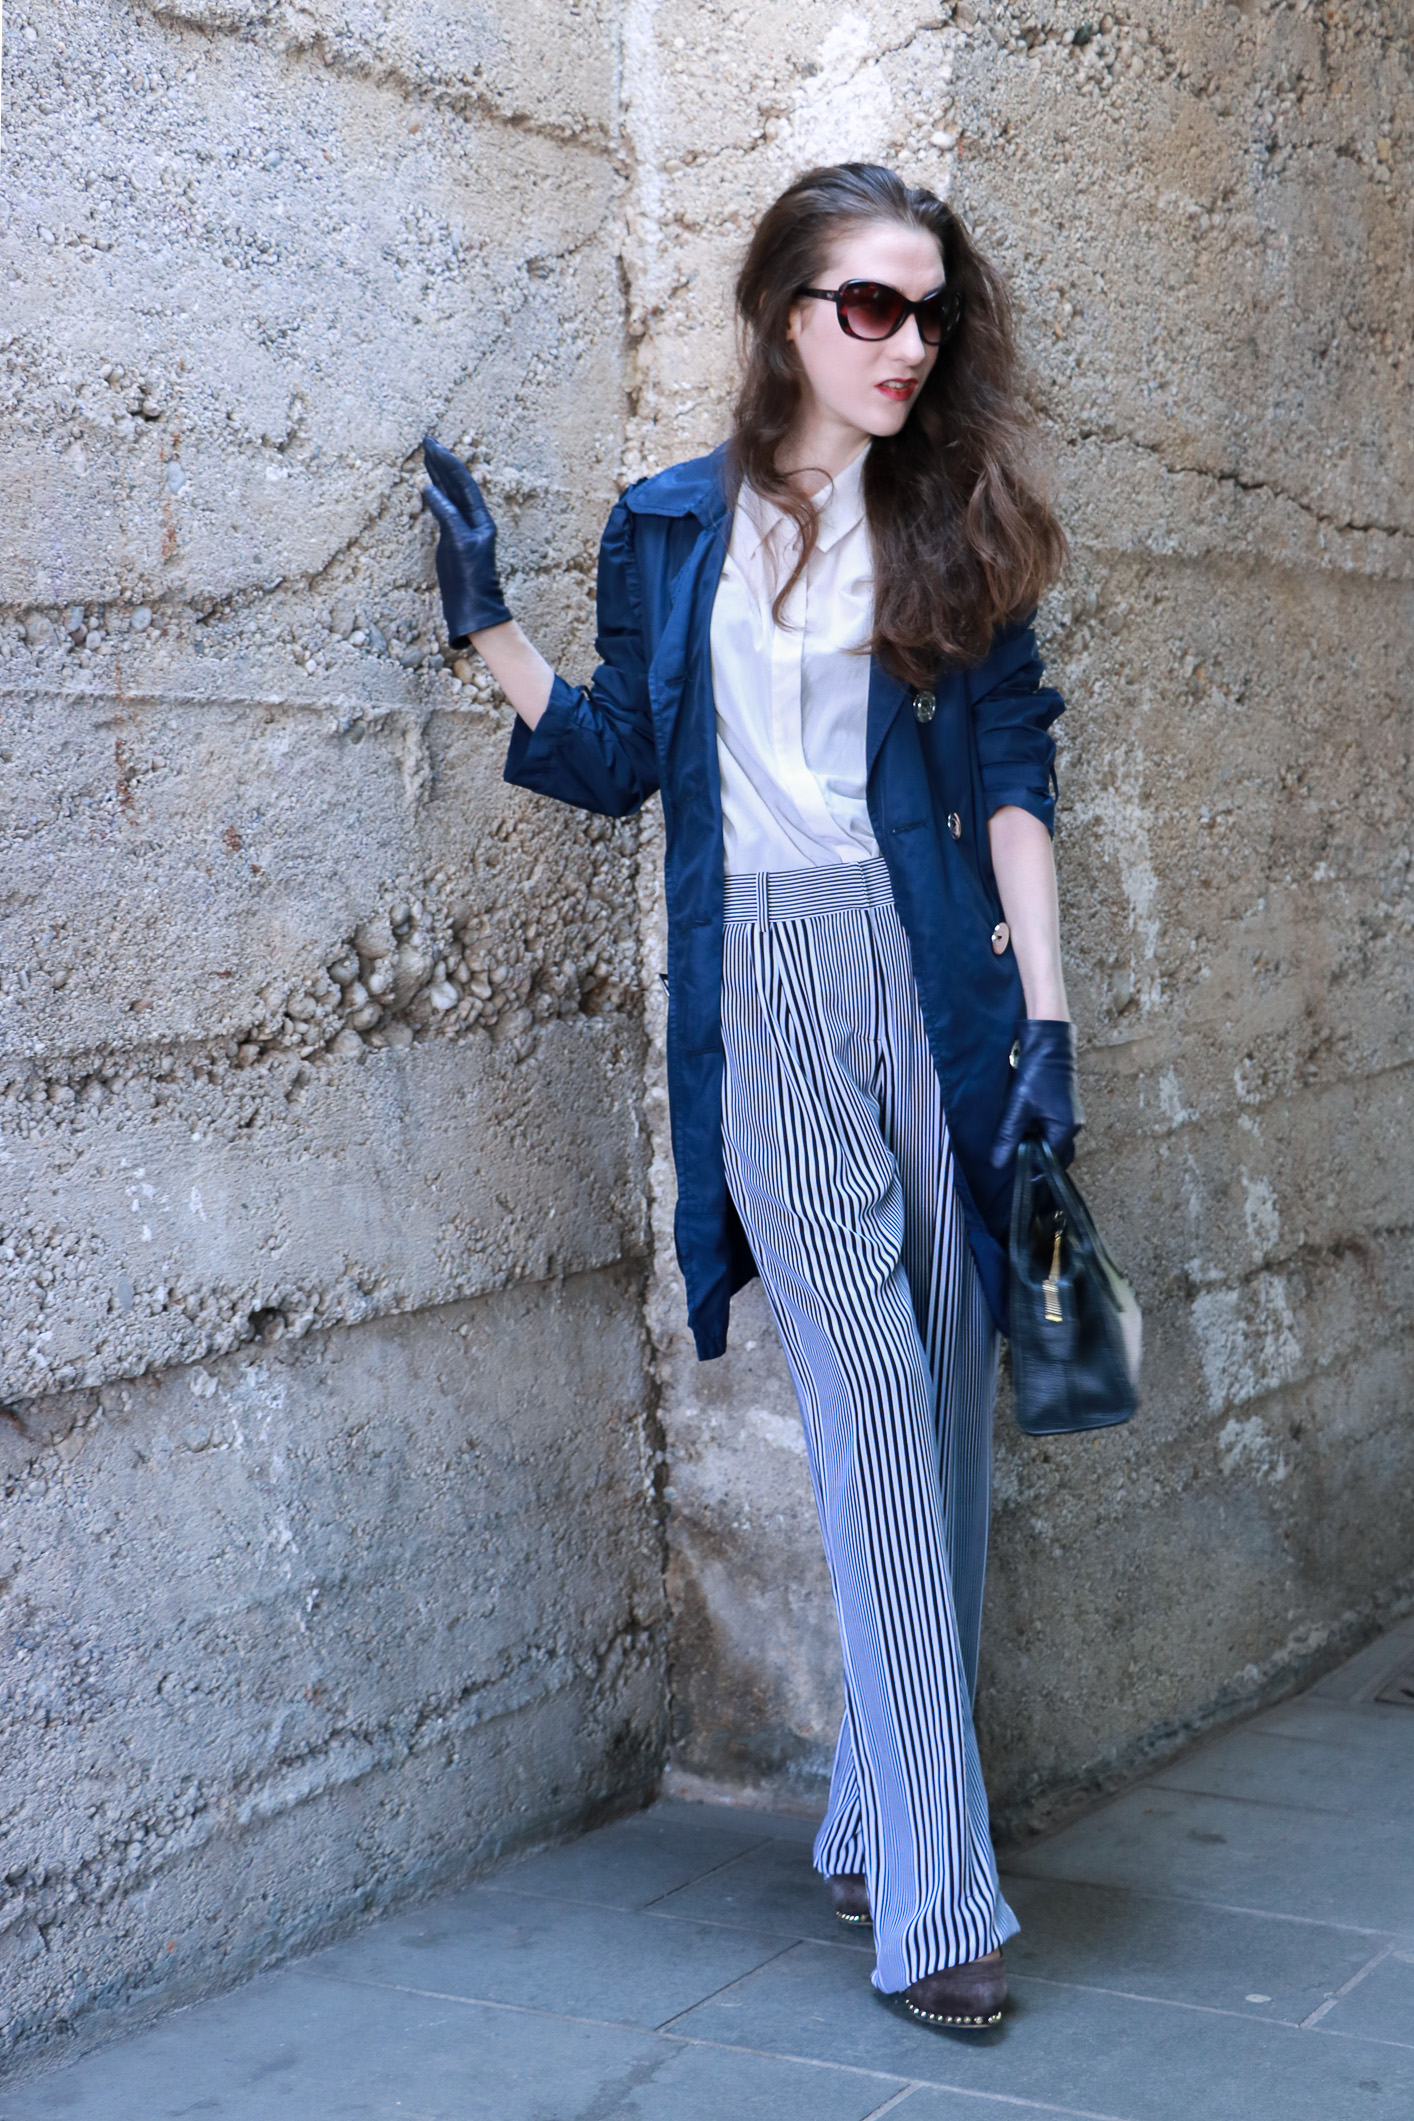 Fashion blogger Veronika Lipar of Brunette From Wall Street sharing how to wear wide-leg pants with stripes for a chic look this spring